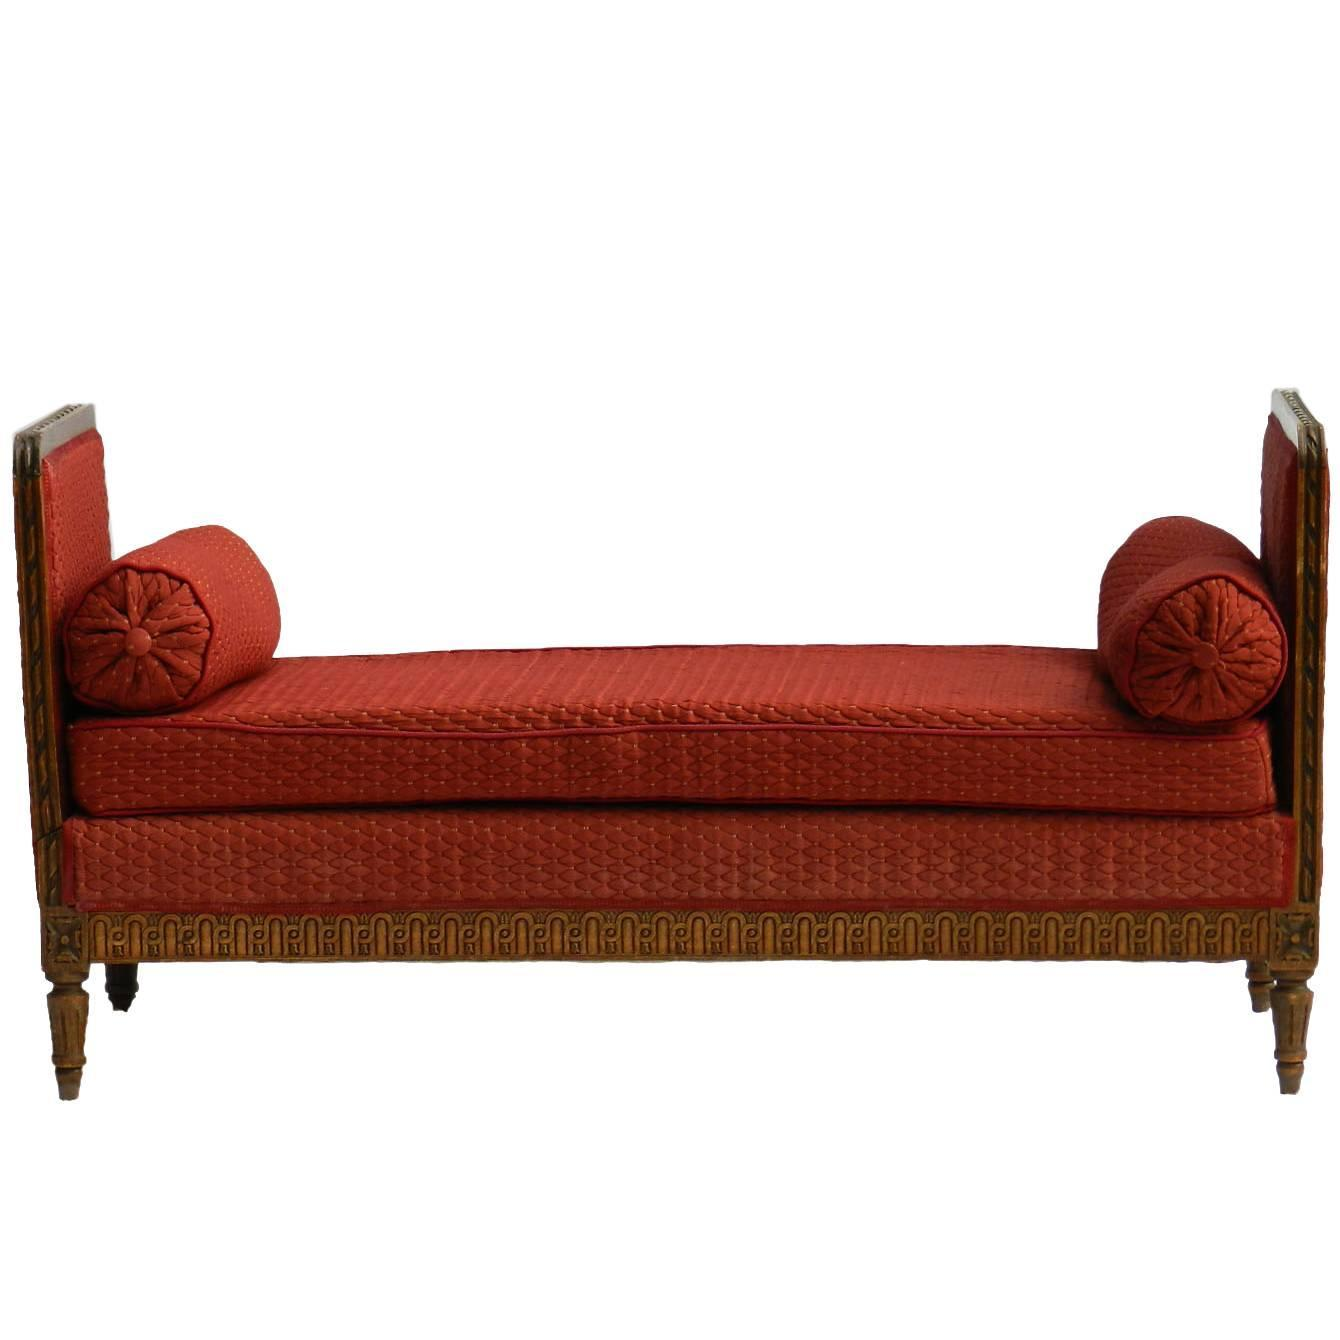 oak furniture sofa beds modern online shopping india french daybed or single chaise longue in circa